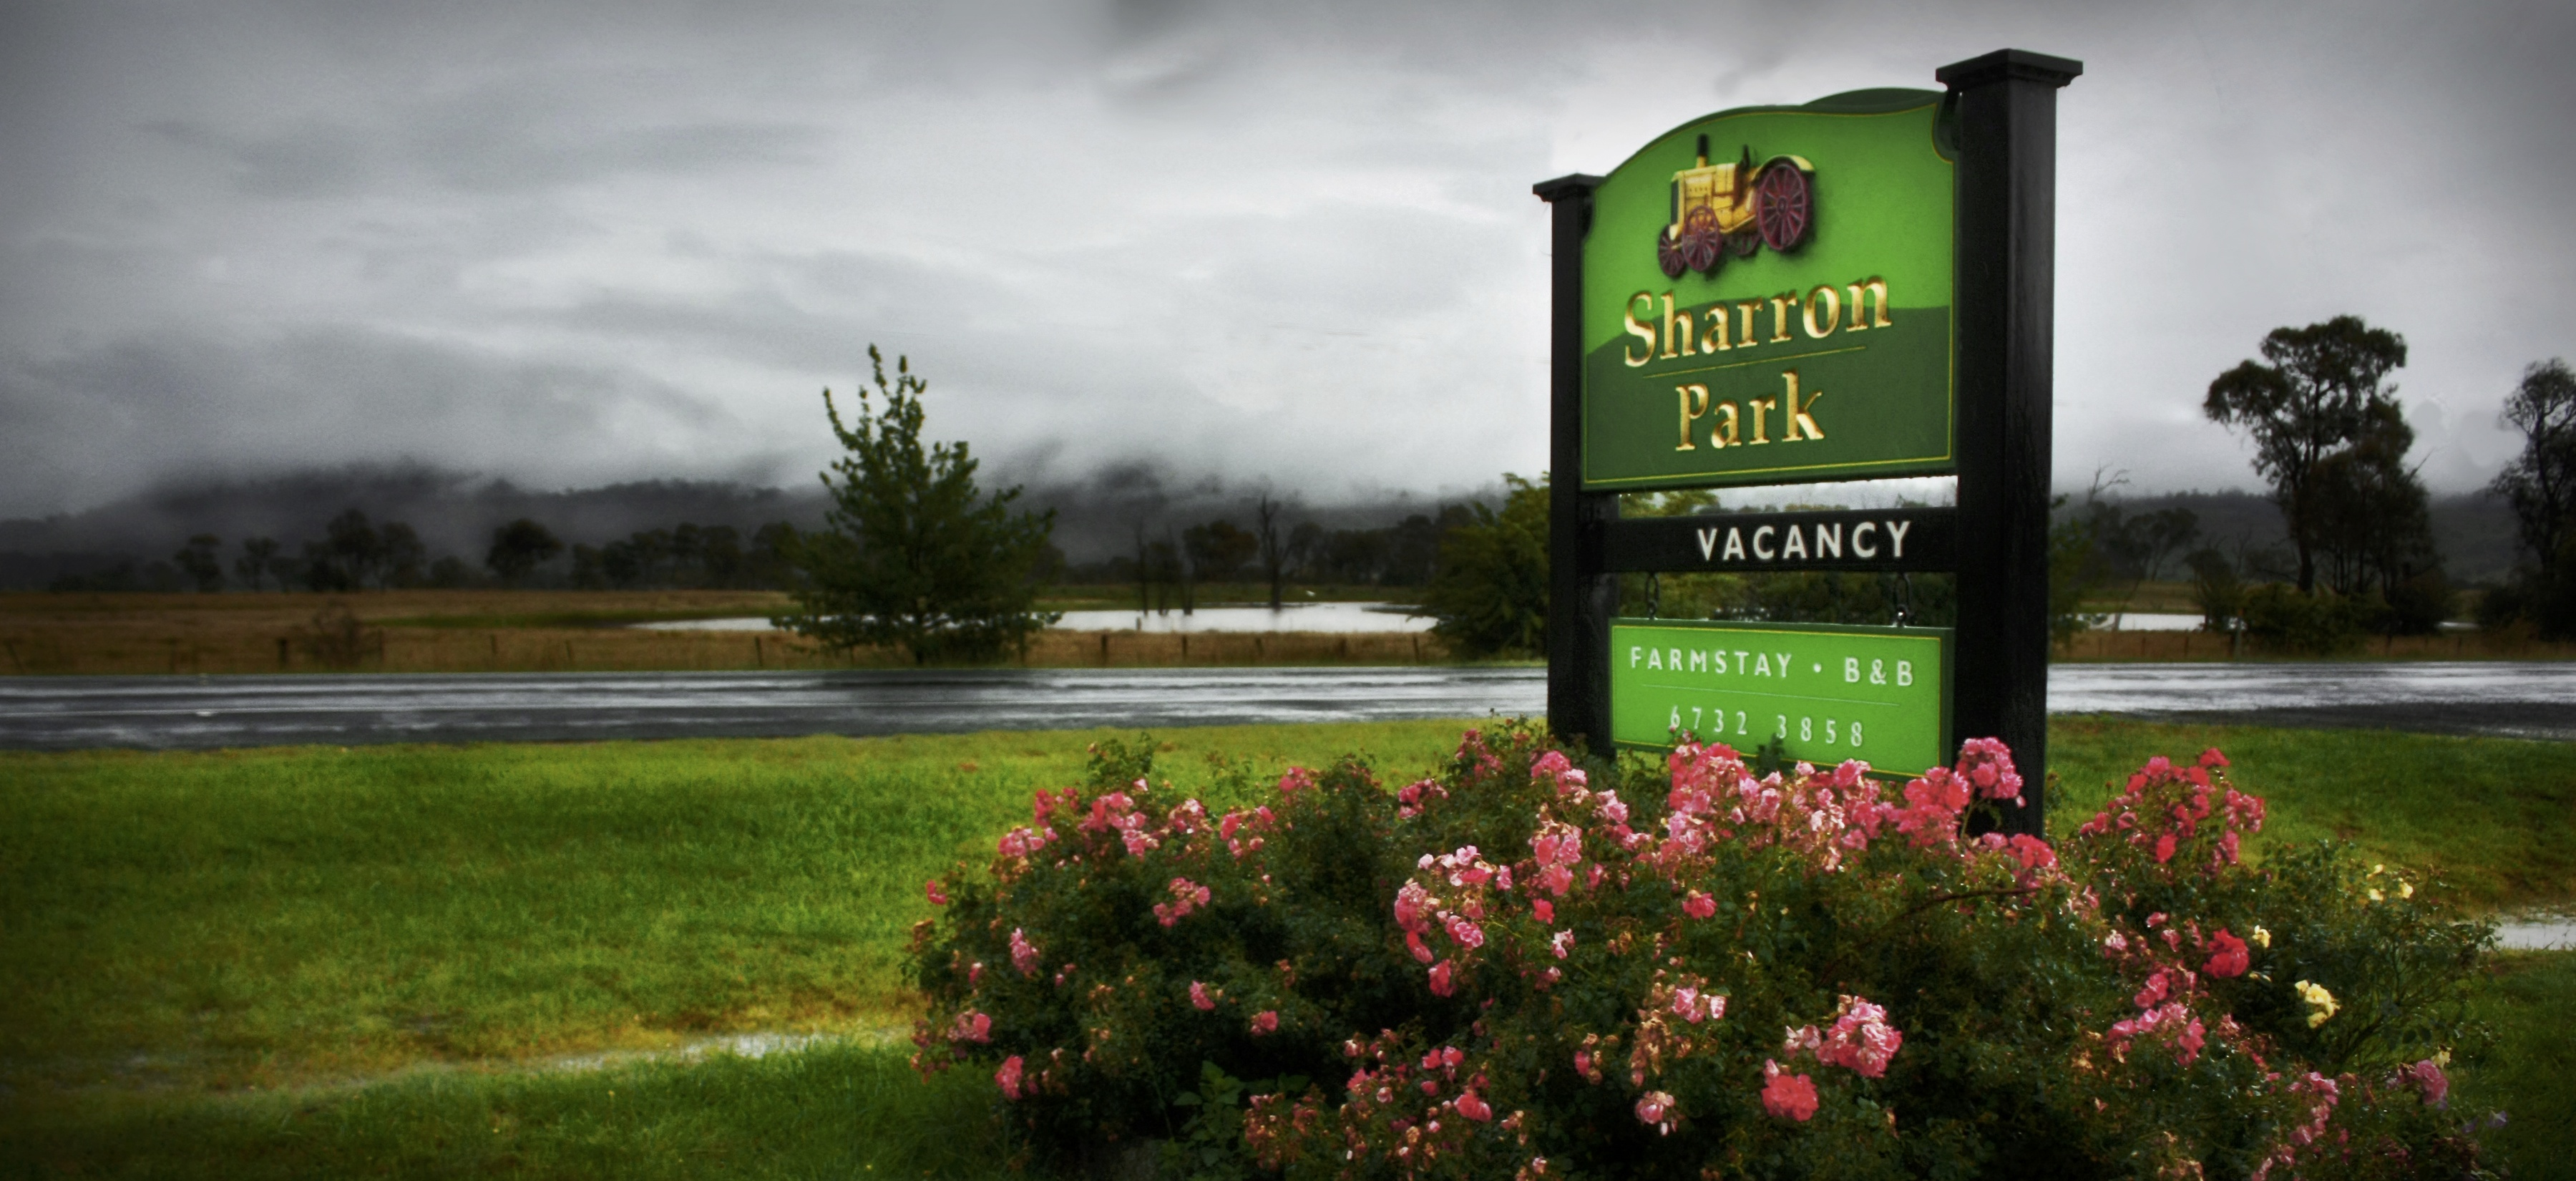 Sharron Park Farmstay welcome sign